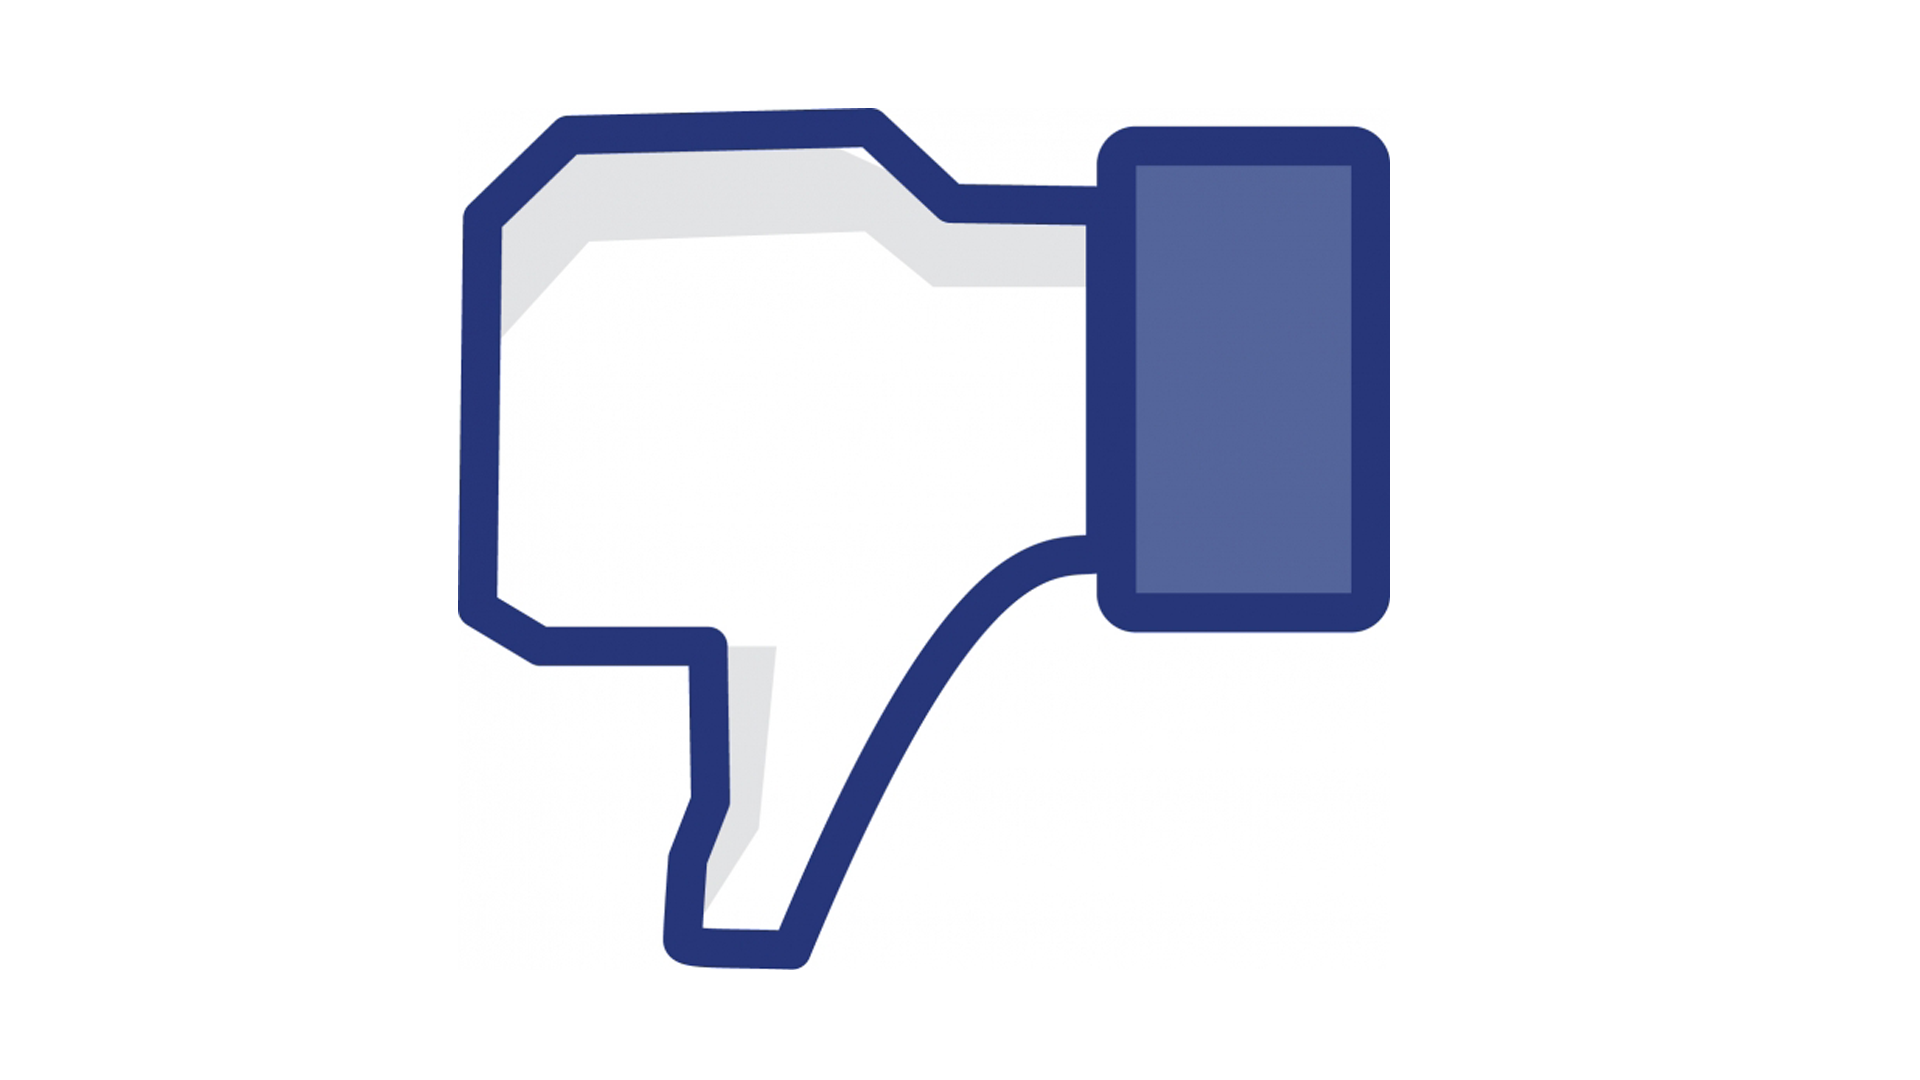 Facebook thumbs up clipart image freeuse library Facebook thumbs up clipart - ClipartFest image freeuse library